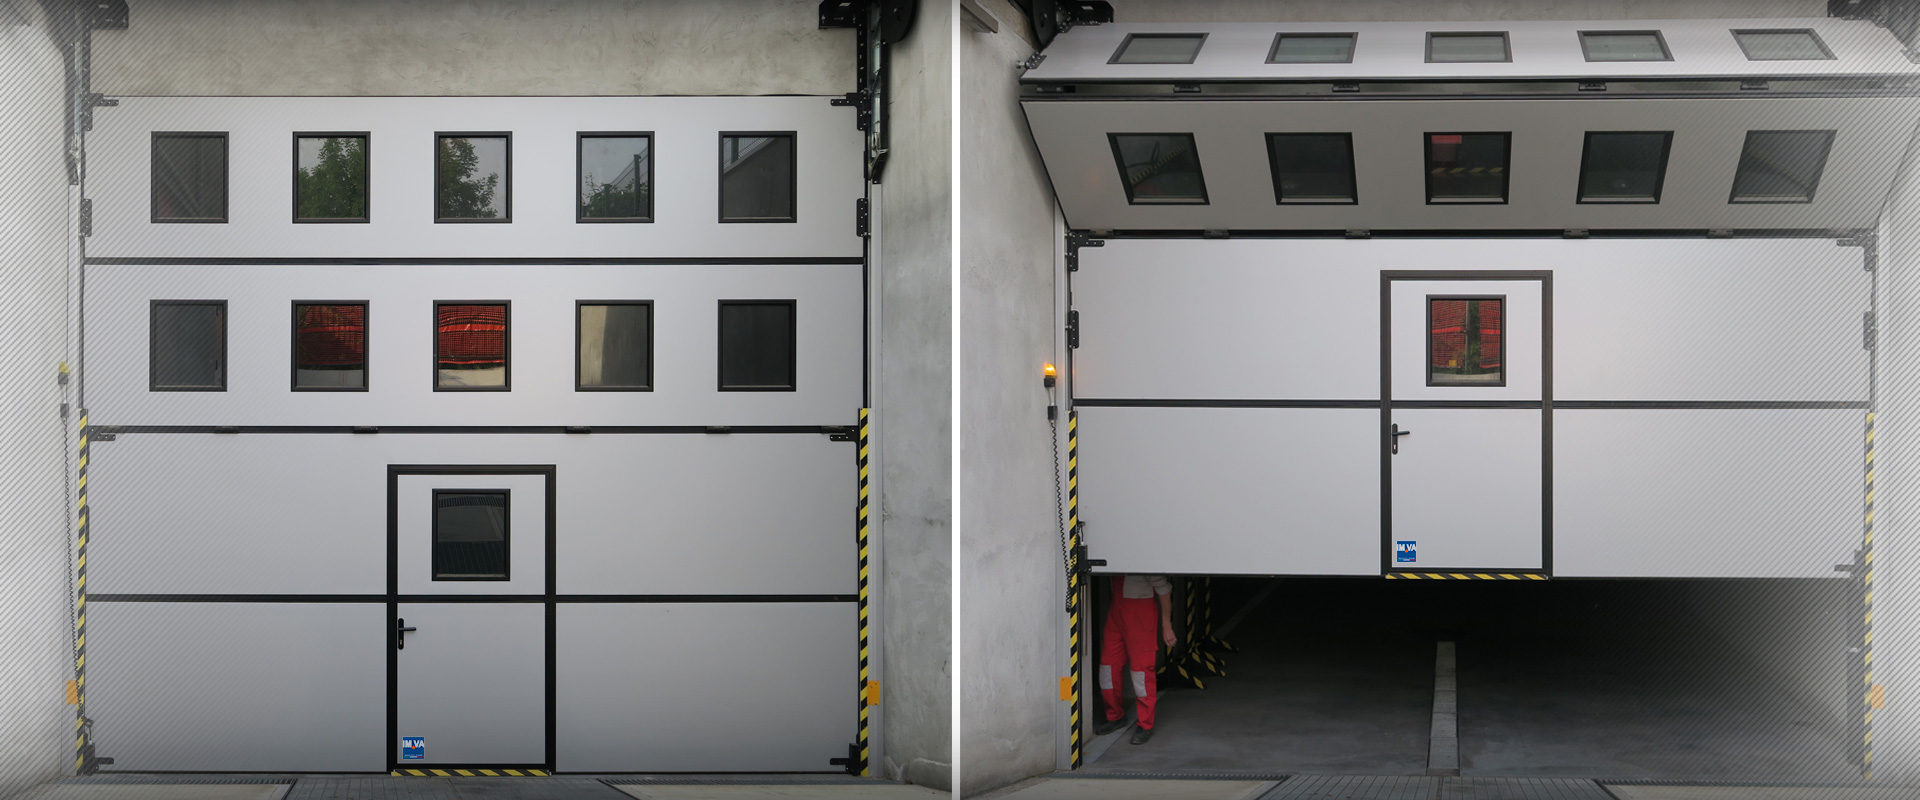 VERTICAL_FOLDING_DOOR_IMVA_VERTIGO_5